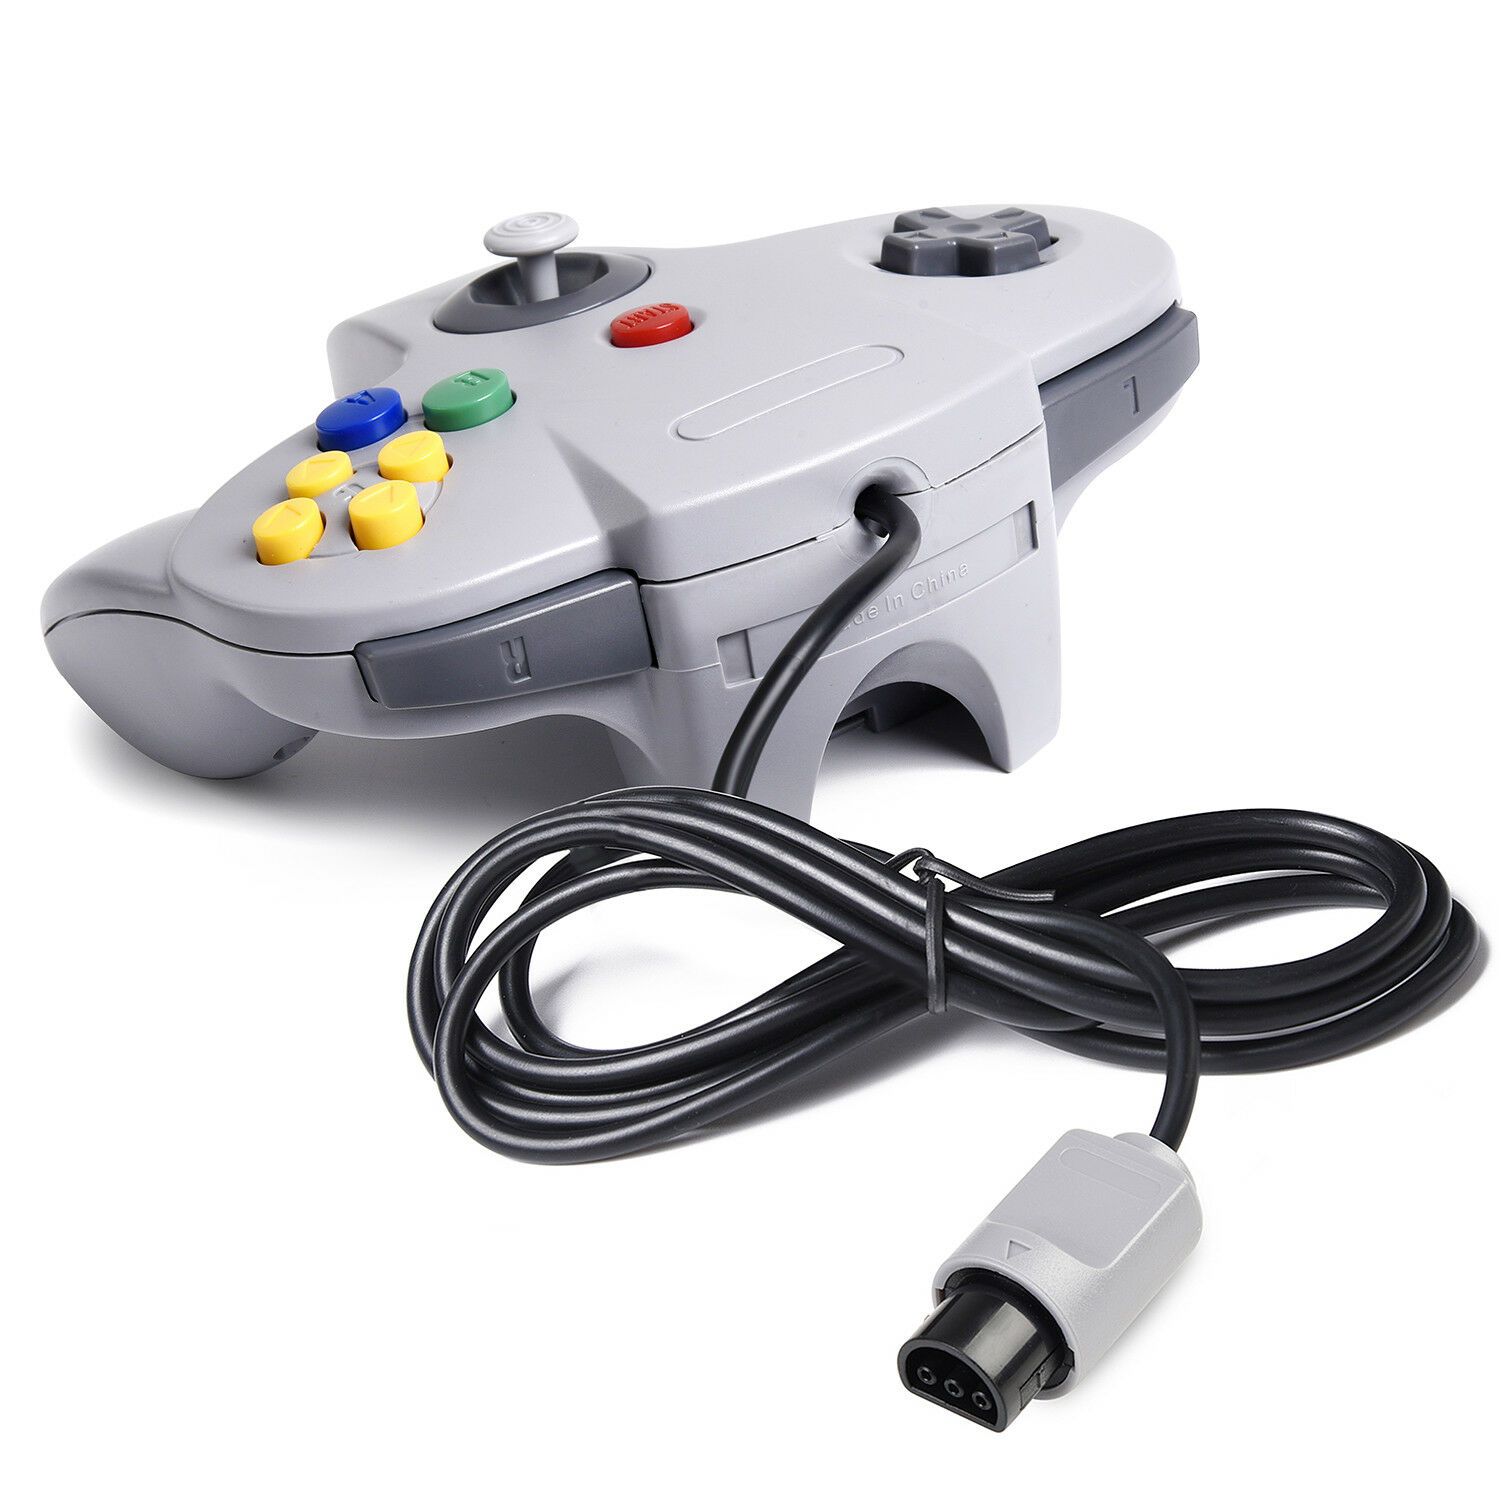 kiwitat/á Retro Wired Game Pad Controller Joystick for N64 System Video Games Console Ice Blue 2 Pack Classic N64 Controller